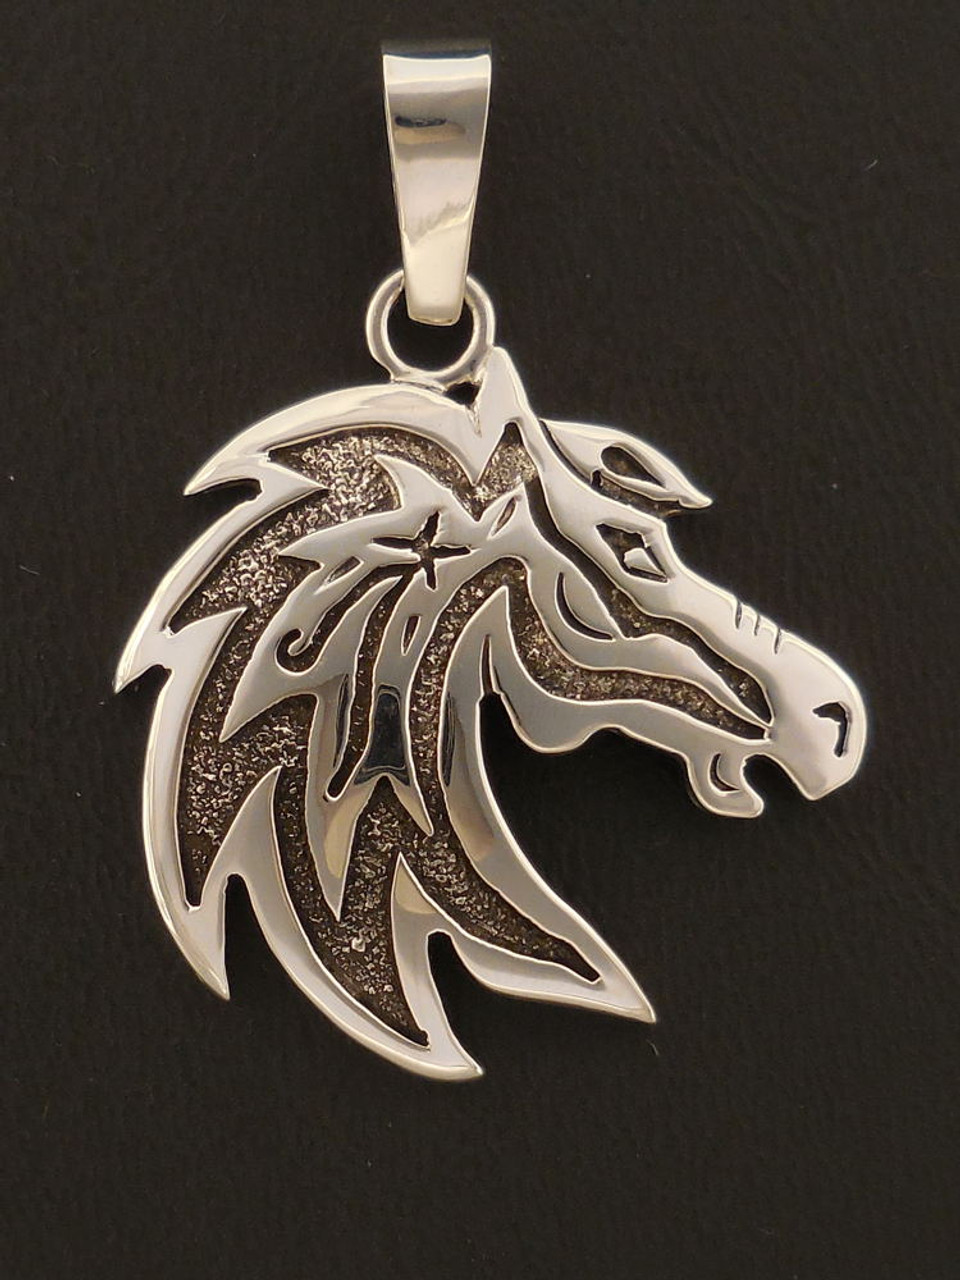 7//8 inch Tall Sterling Silver Horse Head Pendant